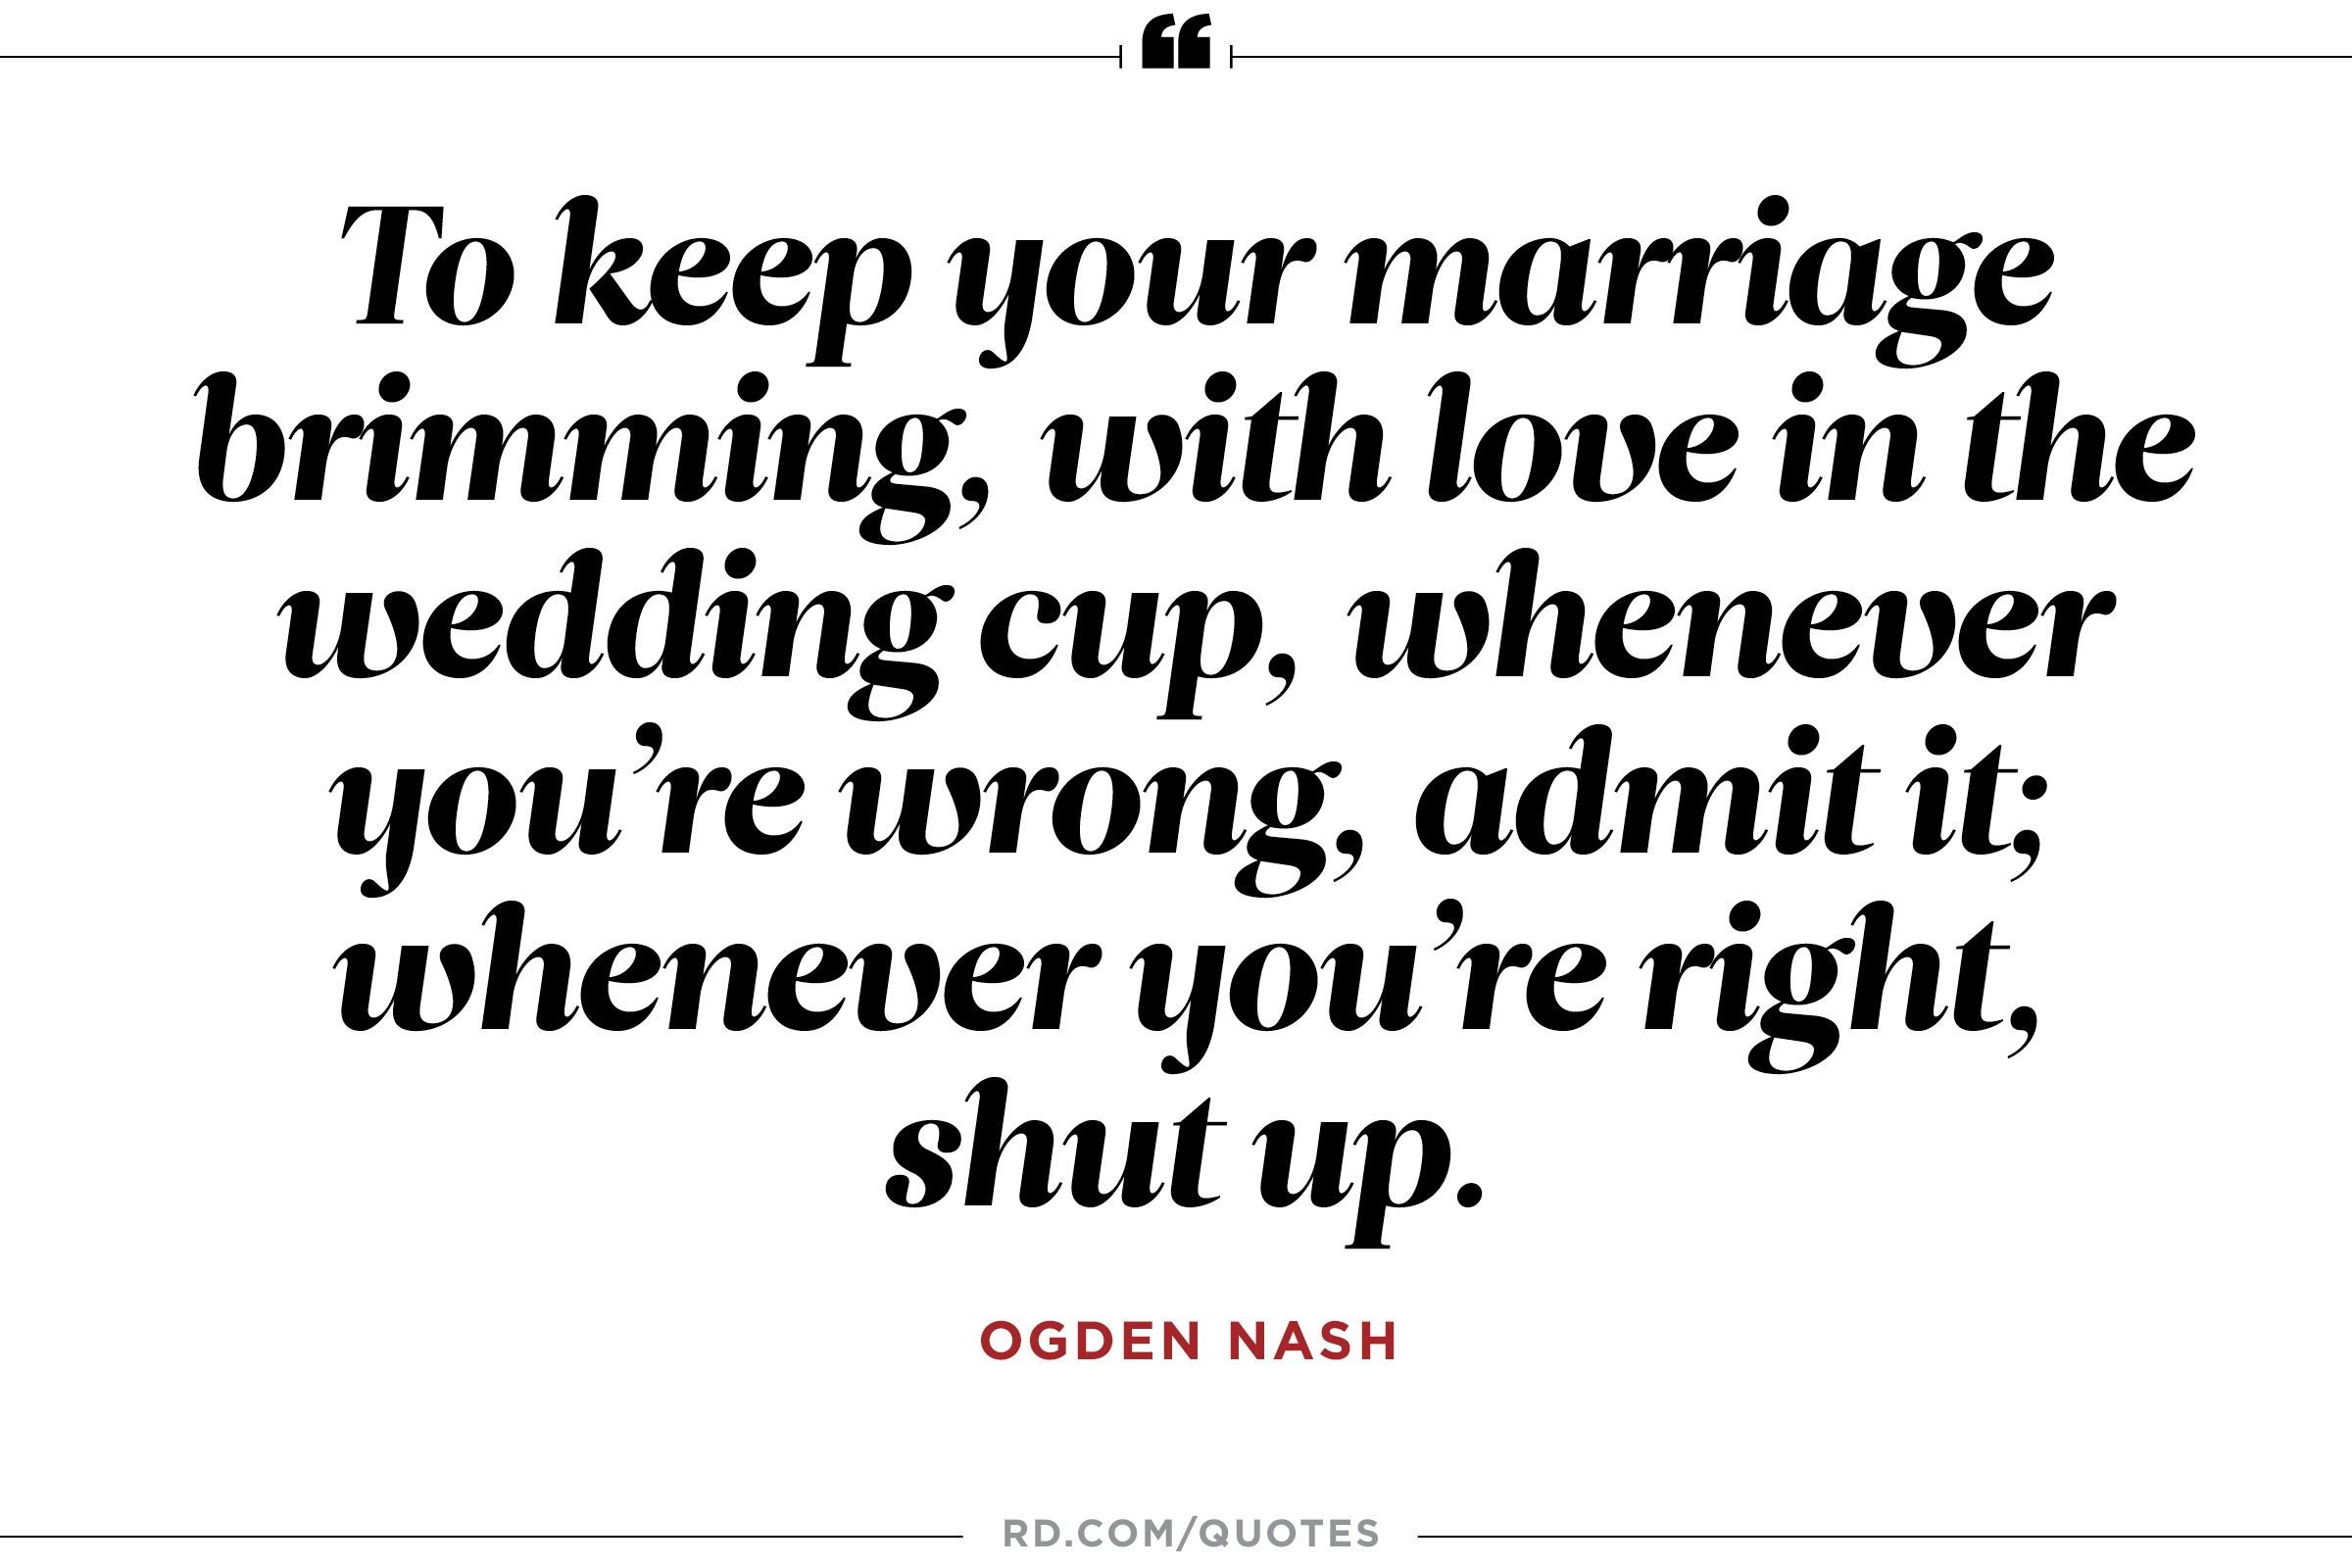 8 Funny Marriage Quotes From the Greatest Wits of All Time  Readers Digest